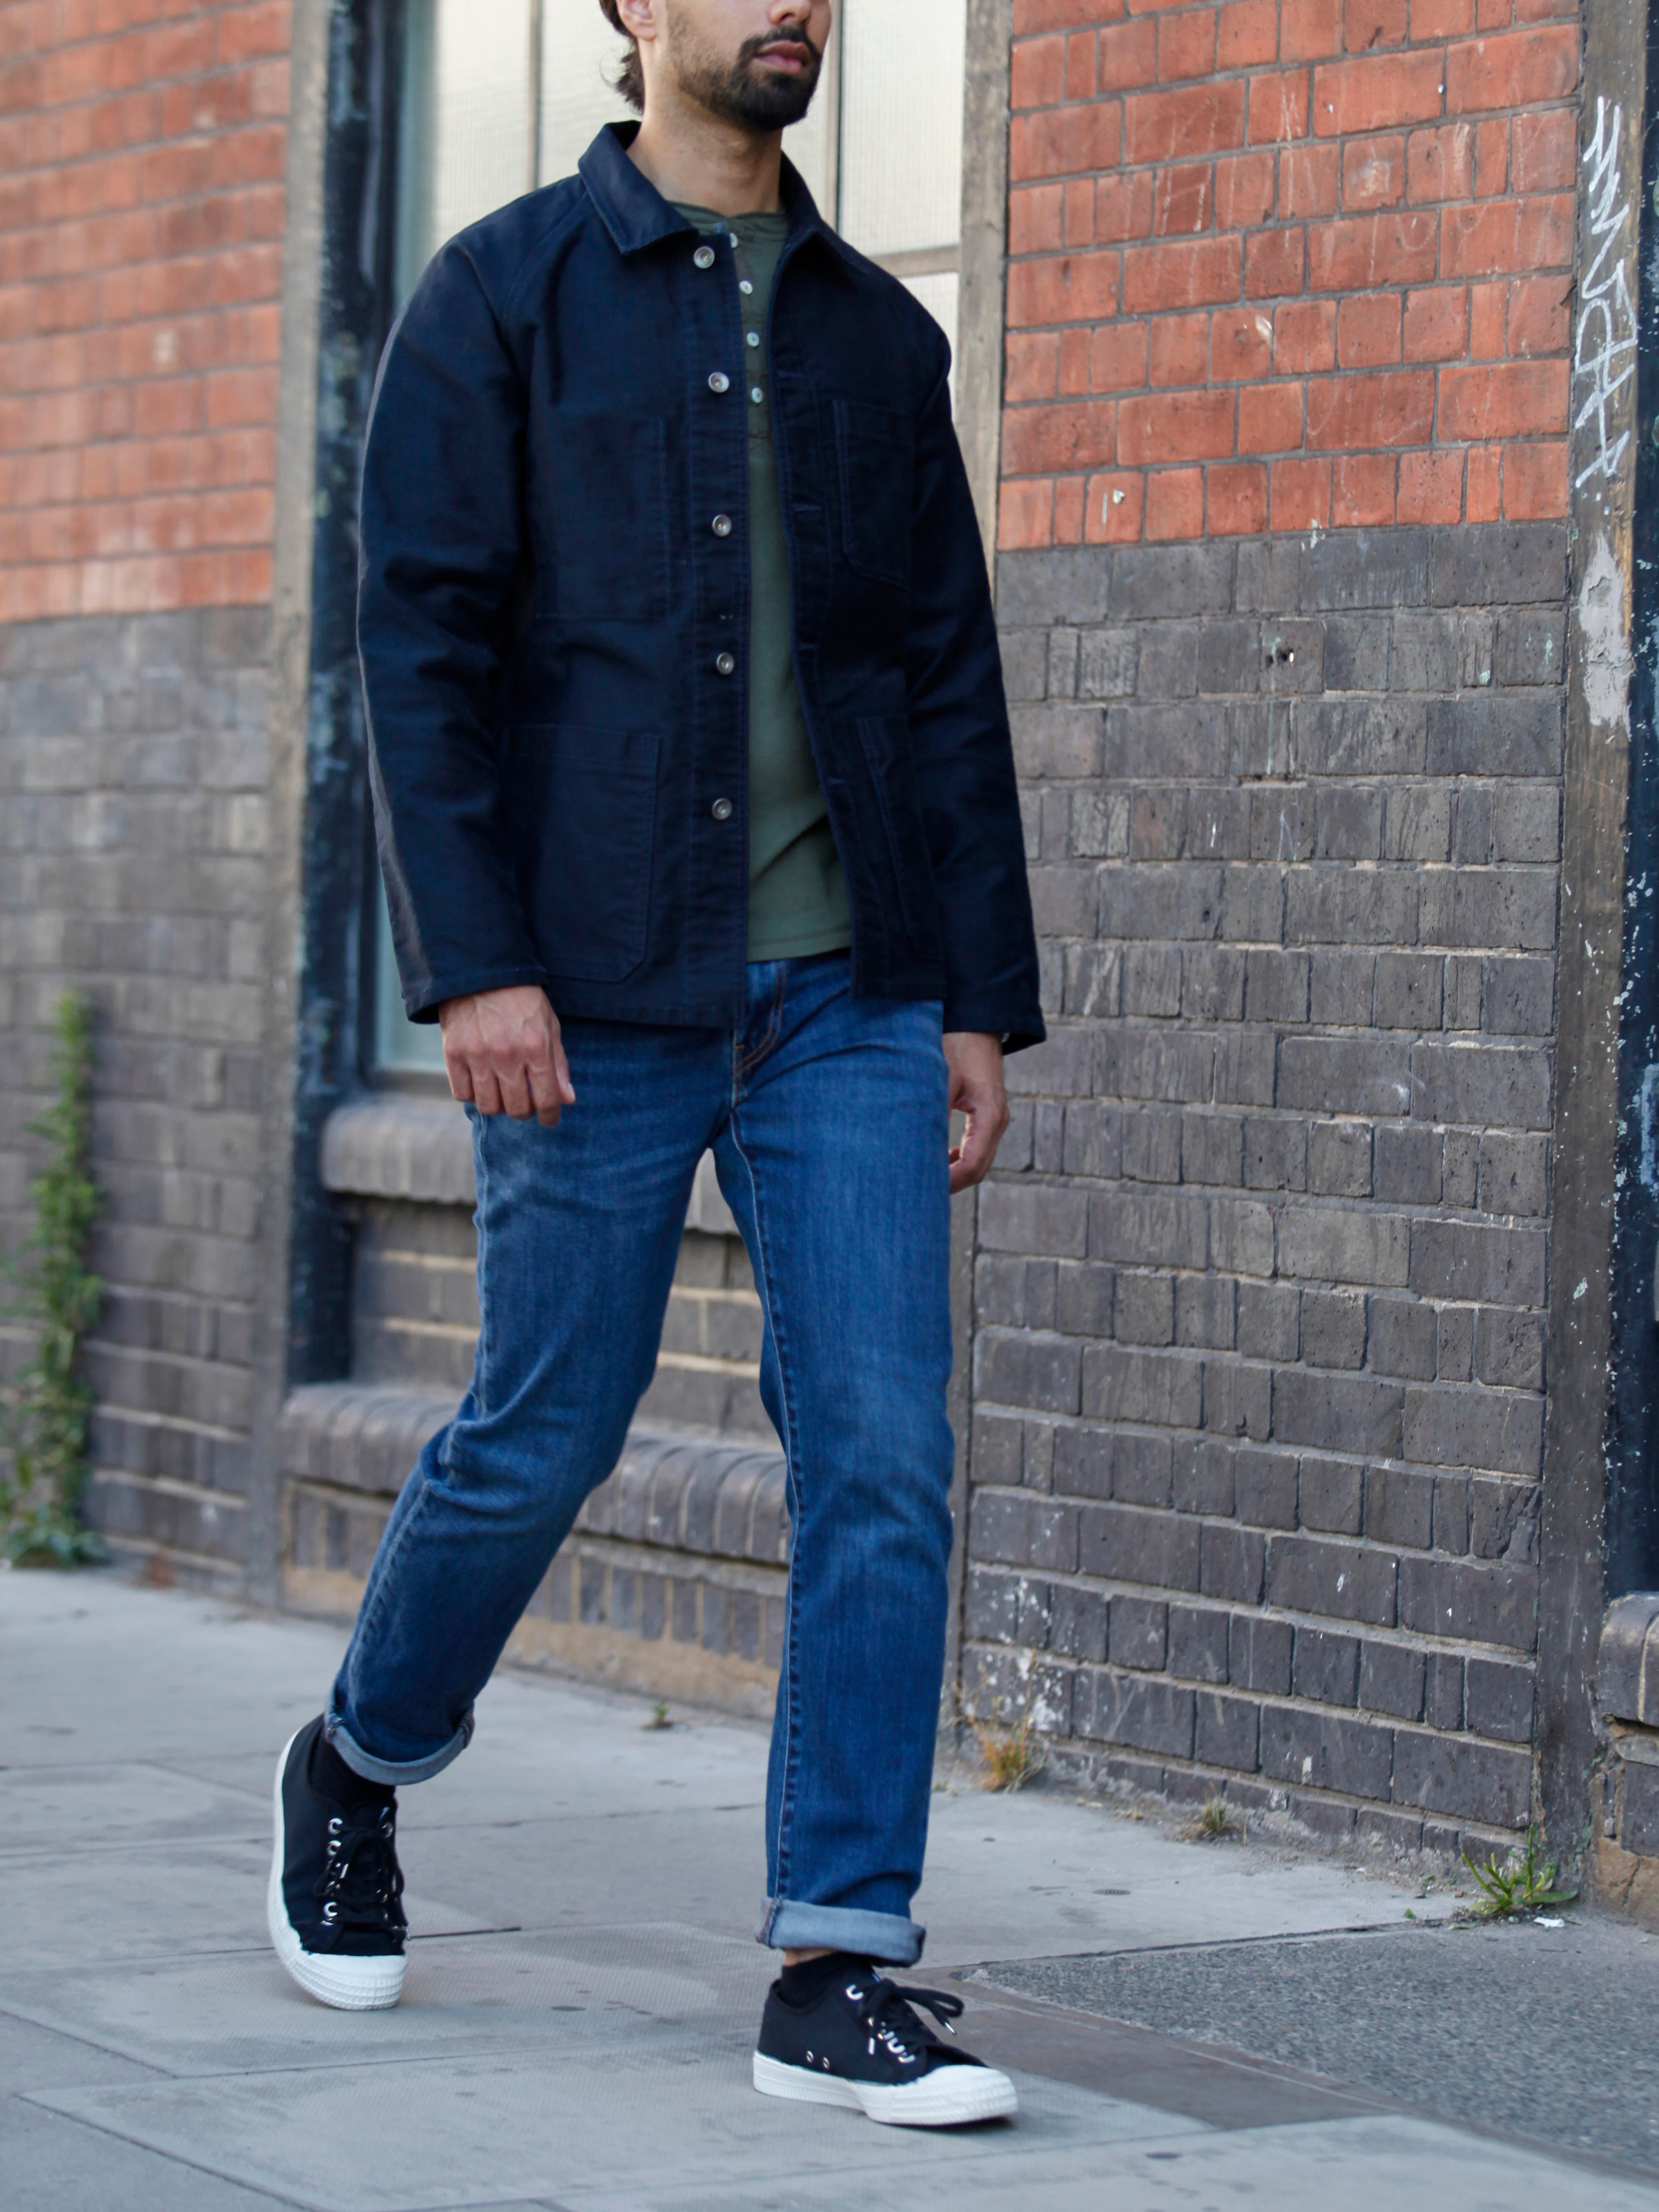 Men's outfit idea for 2021 with utility jacket, long-sleeved henley top, dark blue jeans, black sneakers. Suitable for spring and fall.